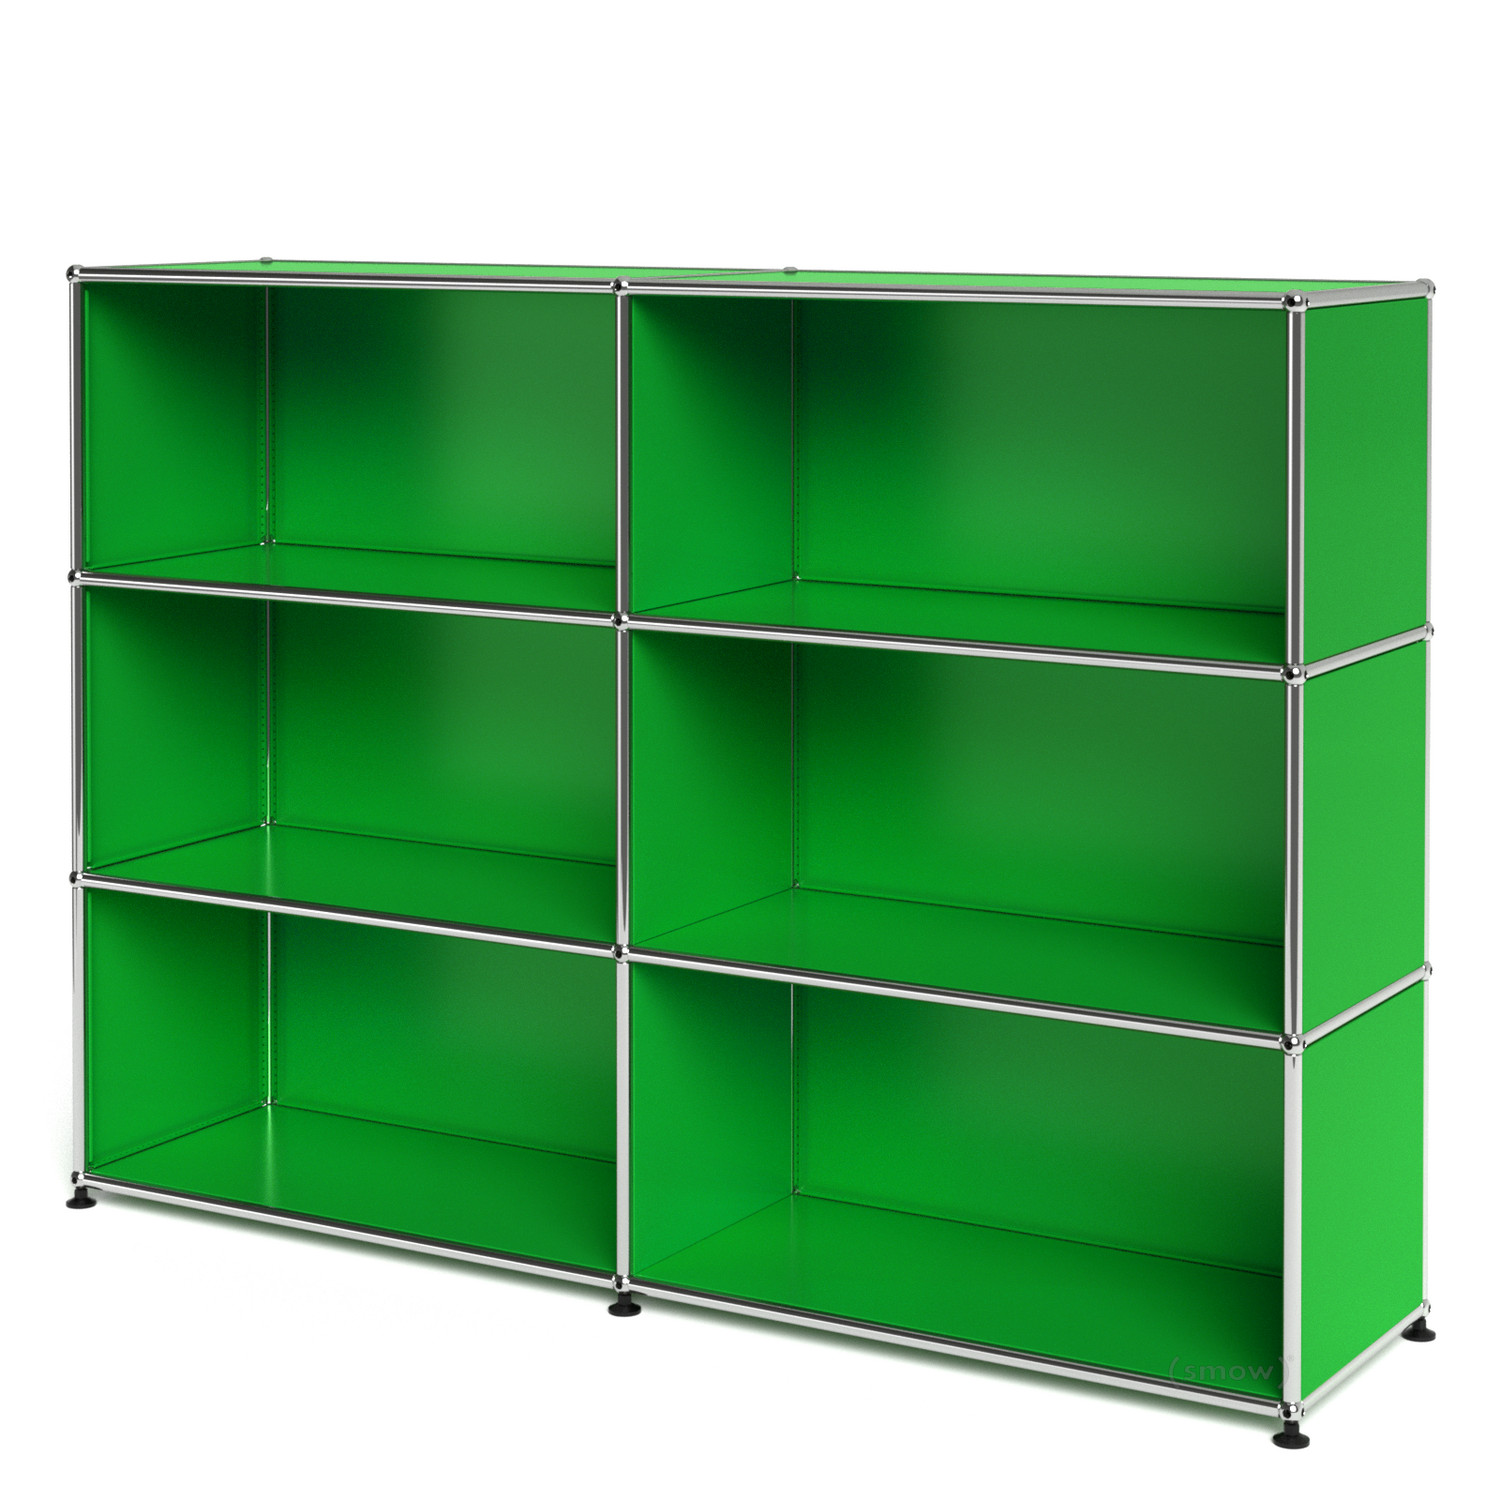 usm haller highboard l open usm green by fritz haller. Black Bedroom Furniture Sets. Home Design Ideas